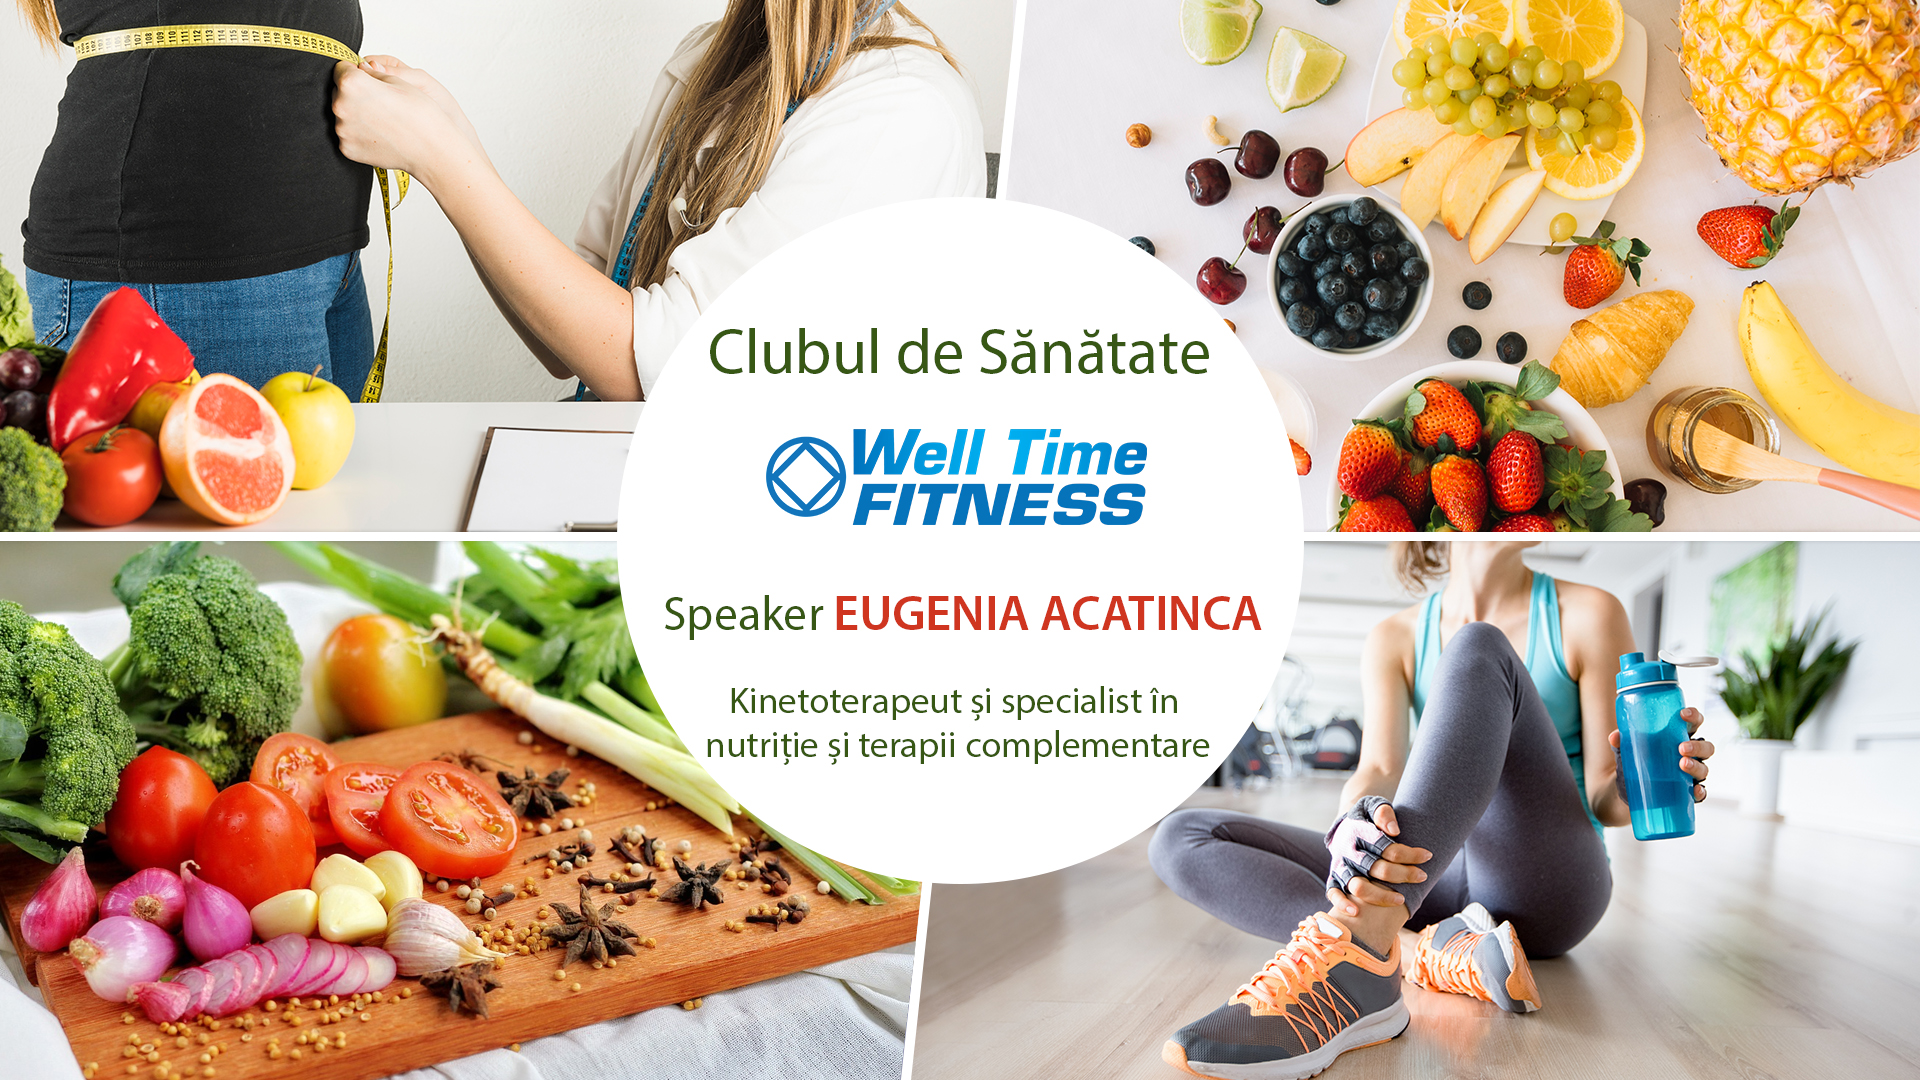 Clubul de sanatate Well Time Fitness